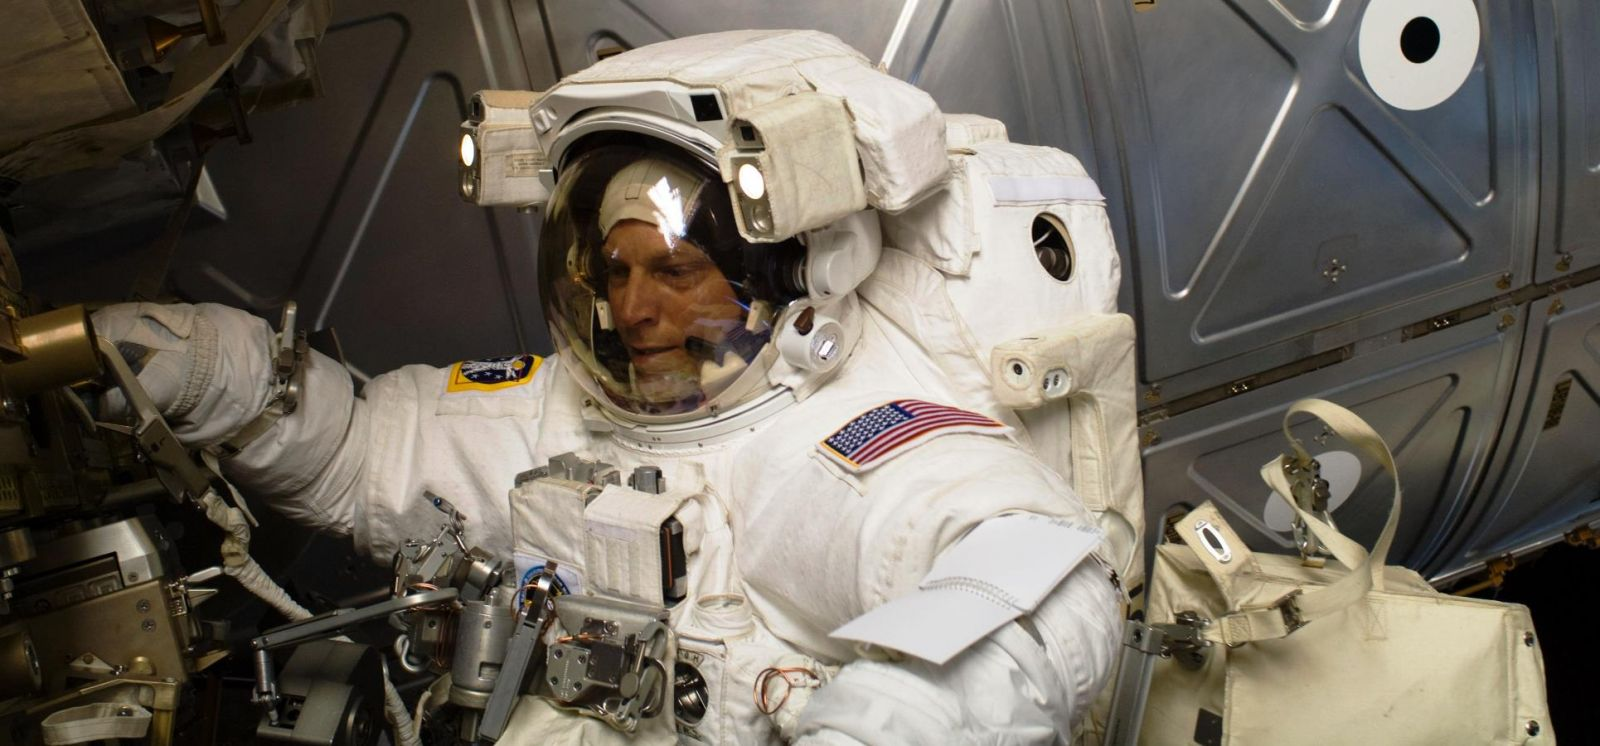 Clayton Anderson spent almost 167 days in space, and about 38 hours conducting extra-vehicular activities (EVA). Photo Credit: NASA